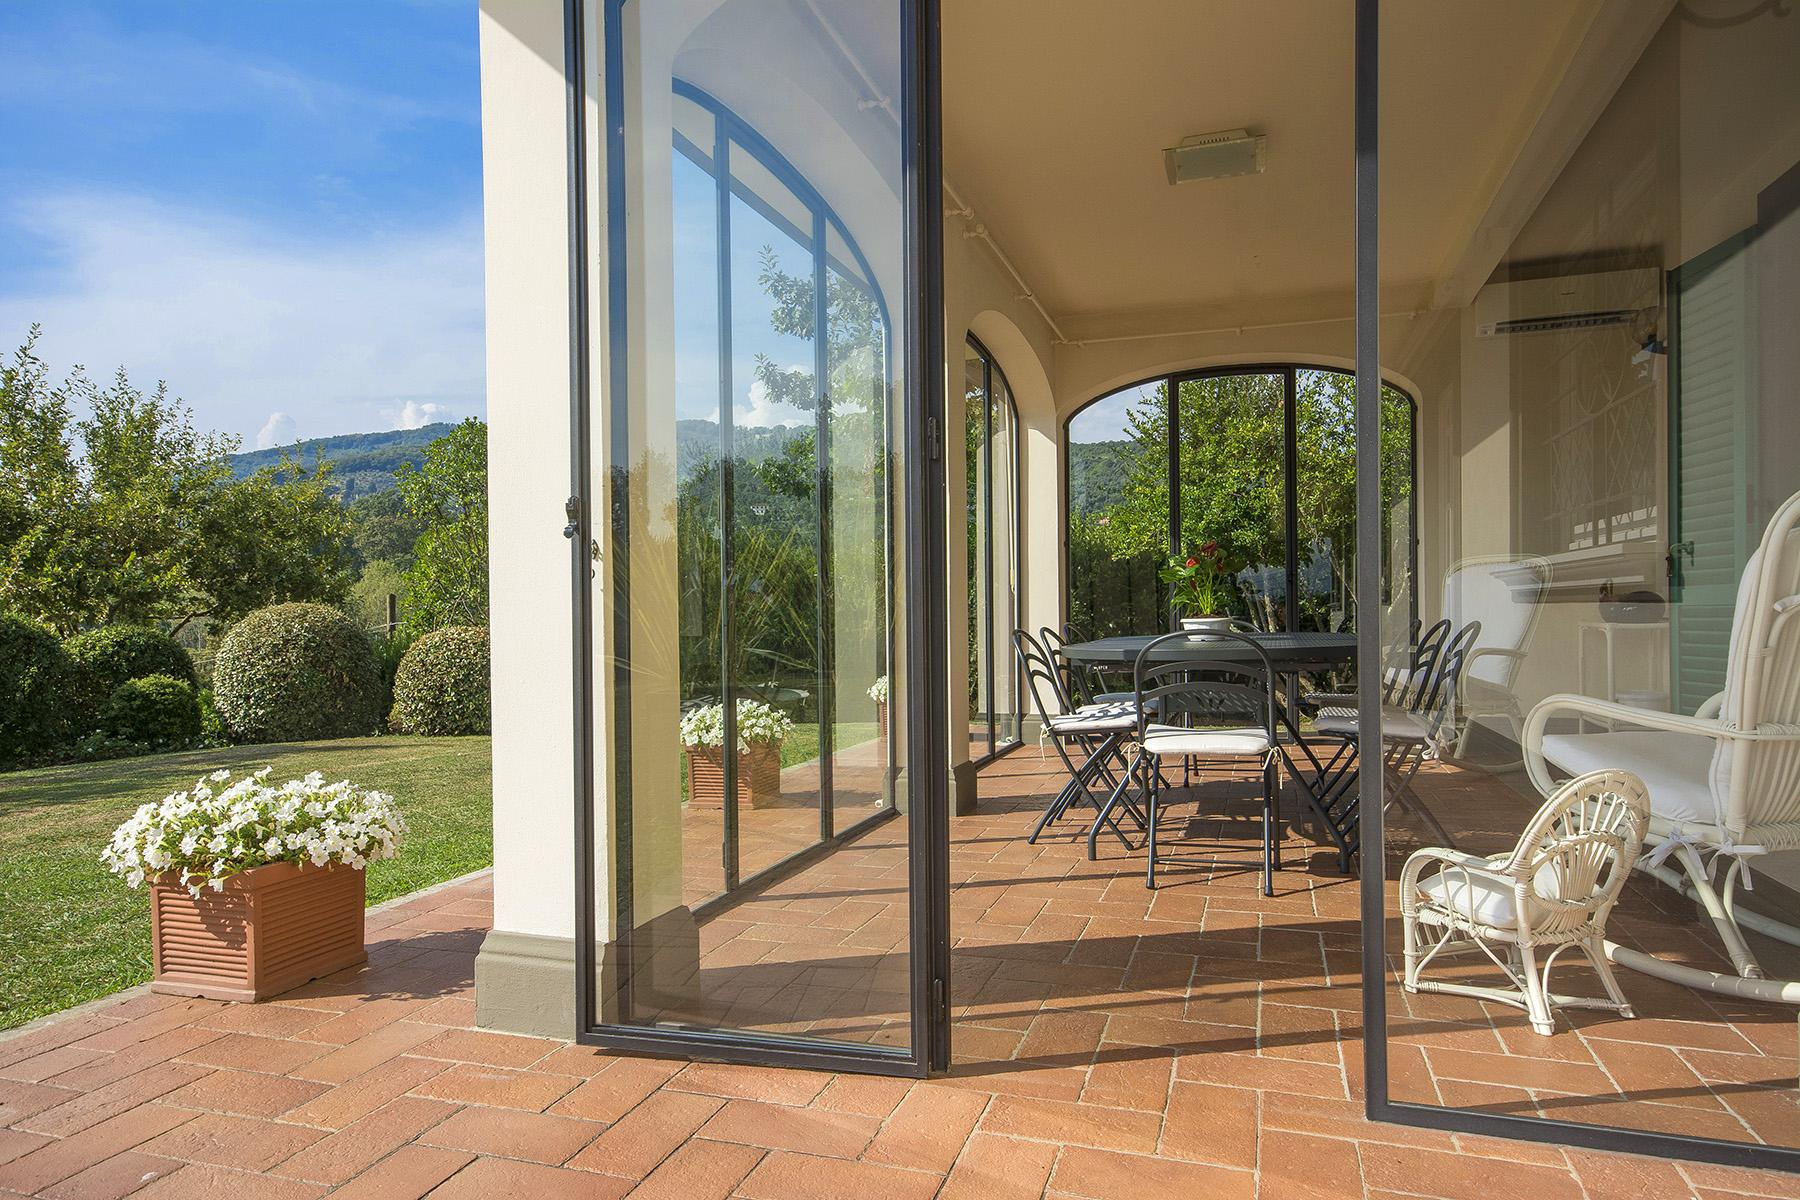 Charming luxury villa on the hills around Lucca - 27